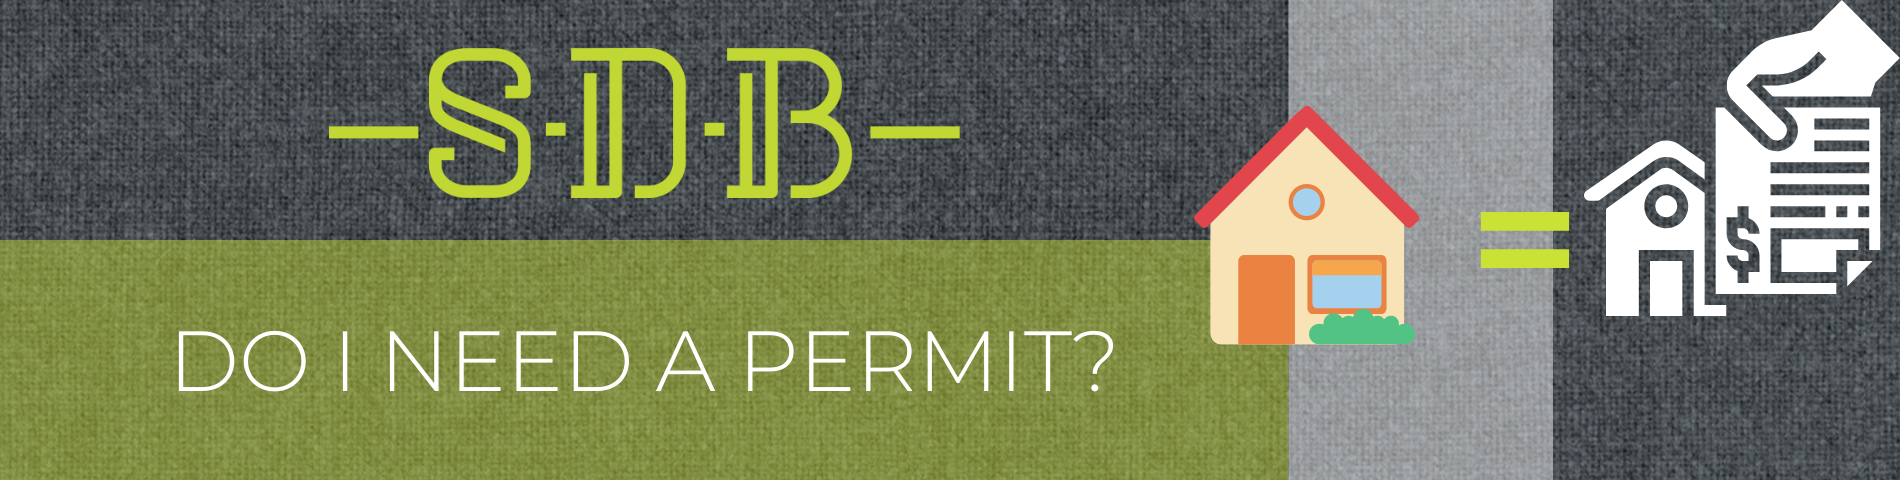 permit denver construction residential remodel renovation green sdb sustainable design build house home paper work equals